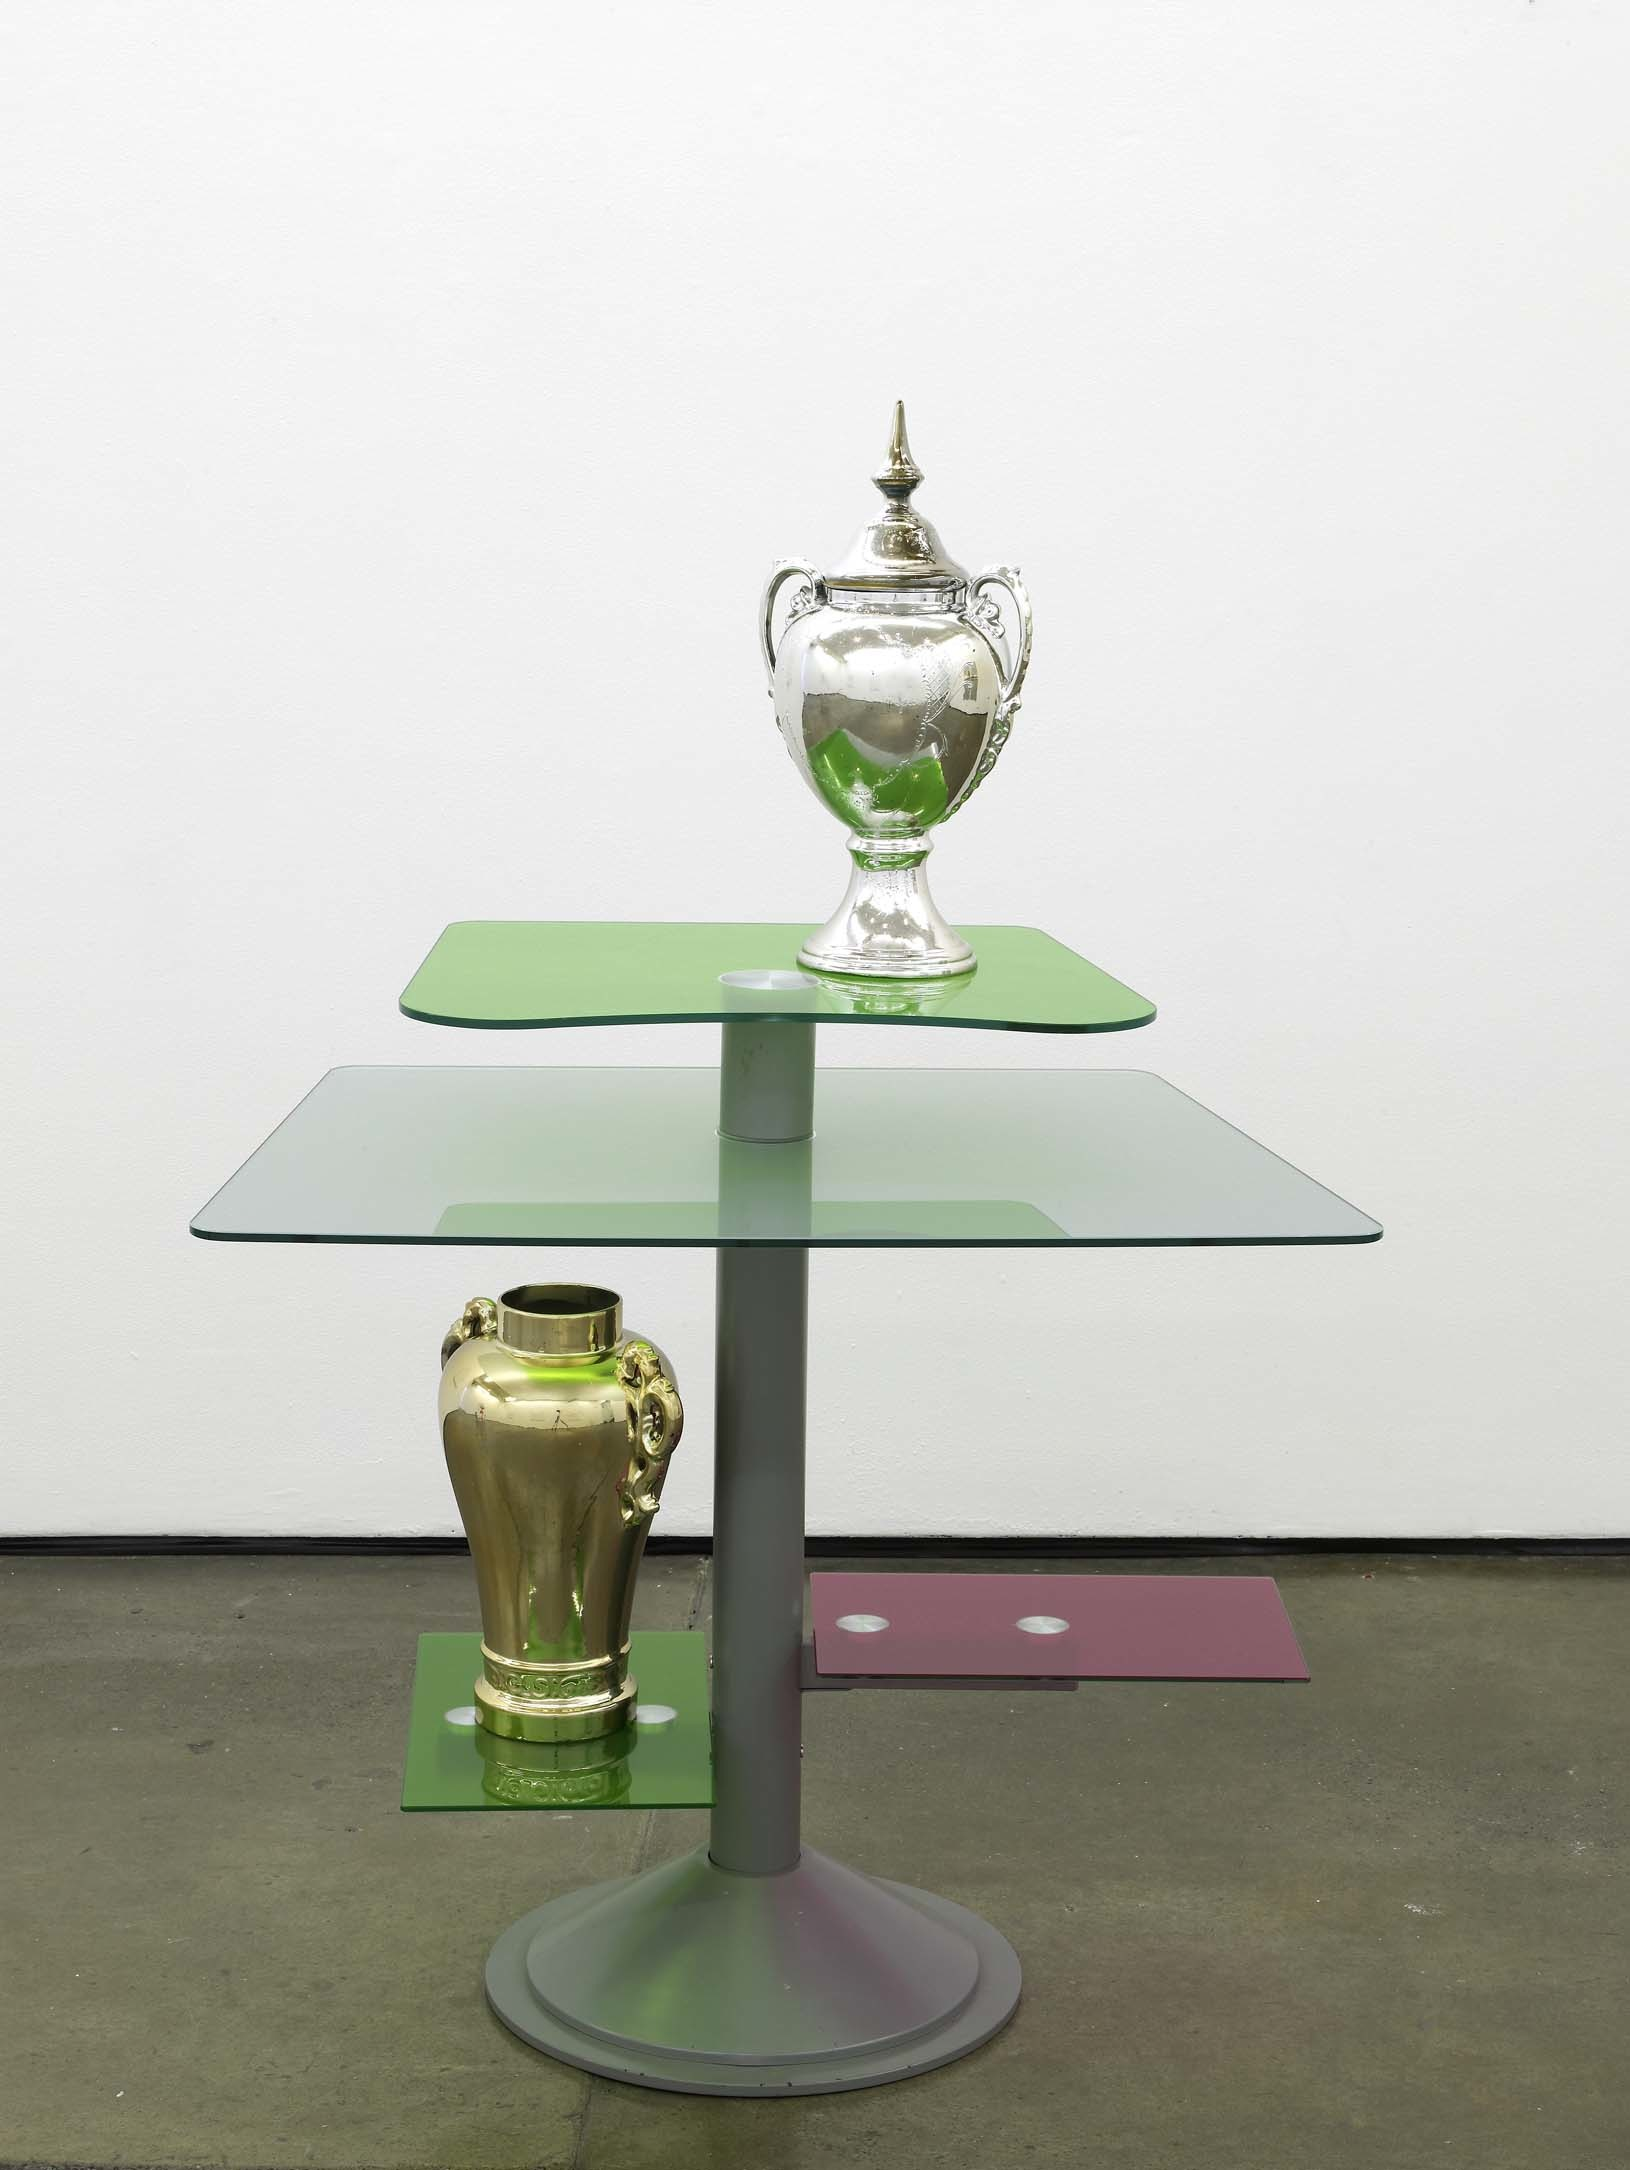 Matthew Darbyshire Untitled Homeware No. 15 2011 chromed gold and silver urns, coloured glass gels, glass and steel support 130 x 90 x 60 cm